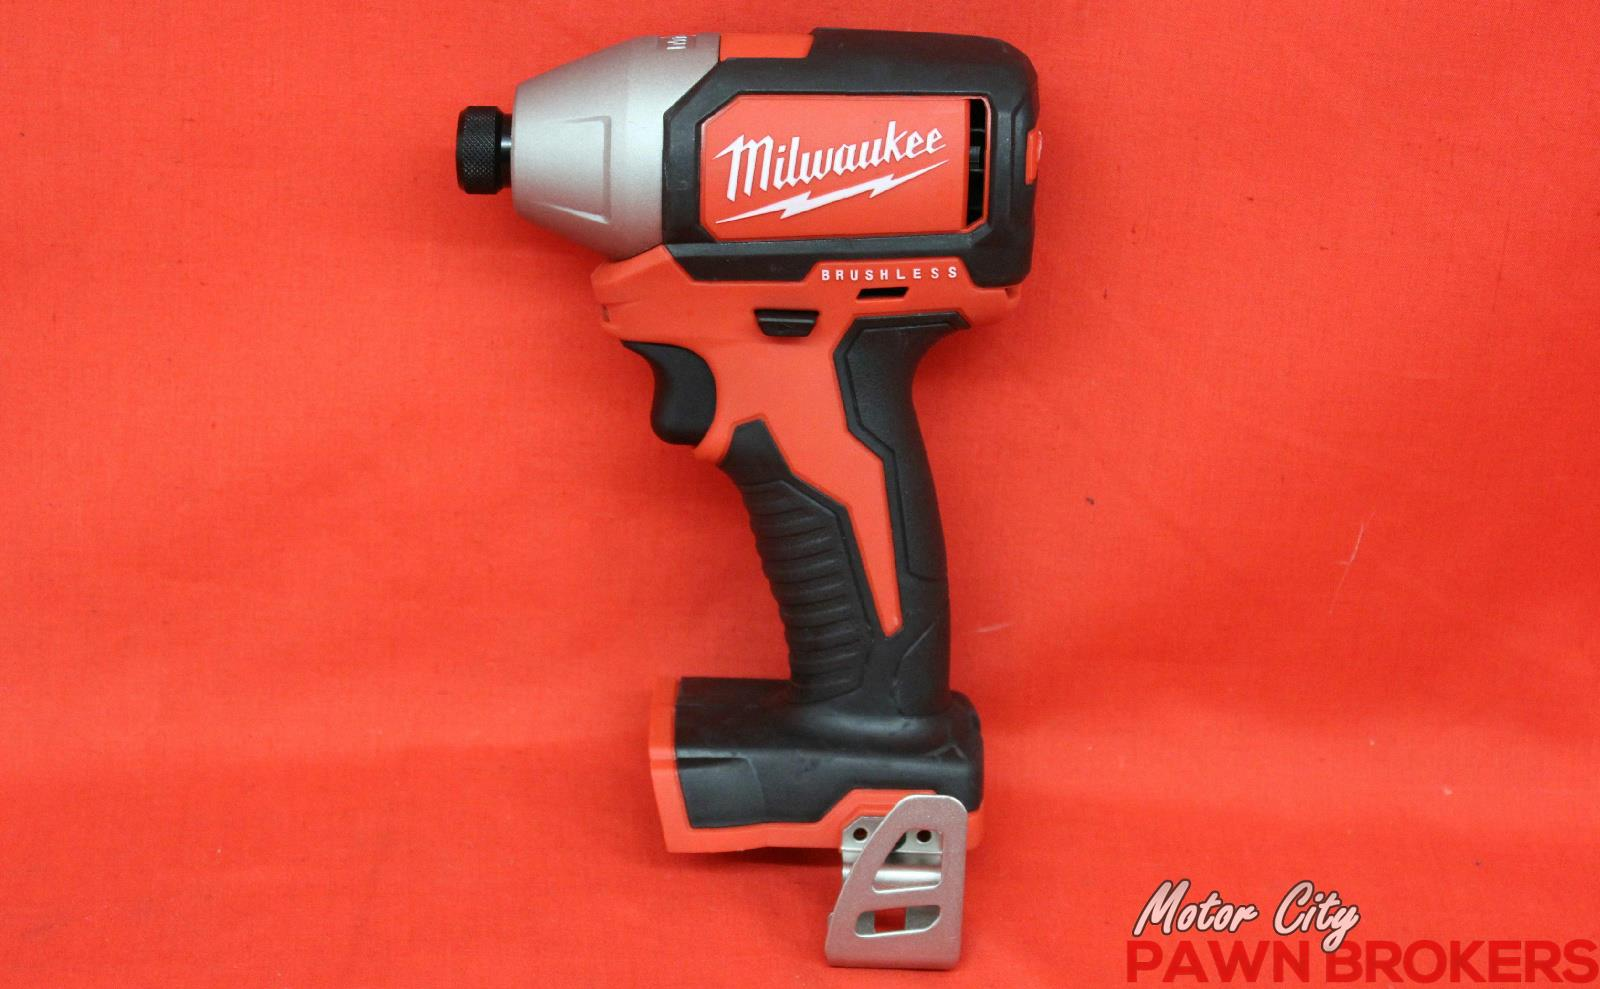 milwaukee 2750 20 m18 1 4 cordless impact driver. Black Bedroom Furniture Sets. Home Design Ideas